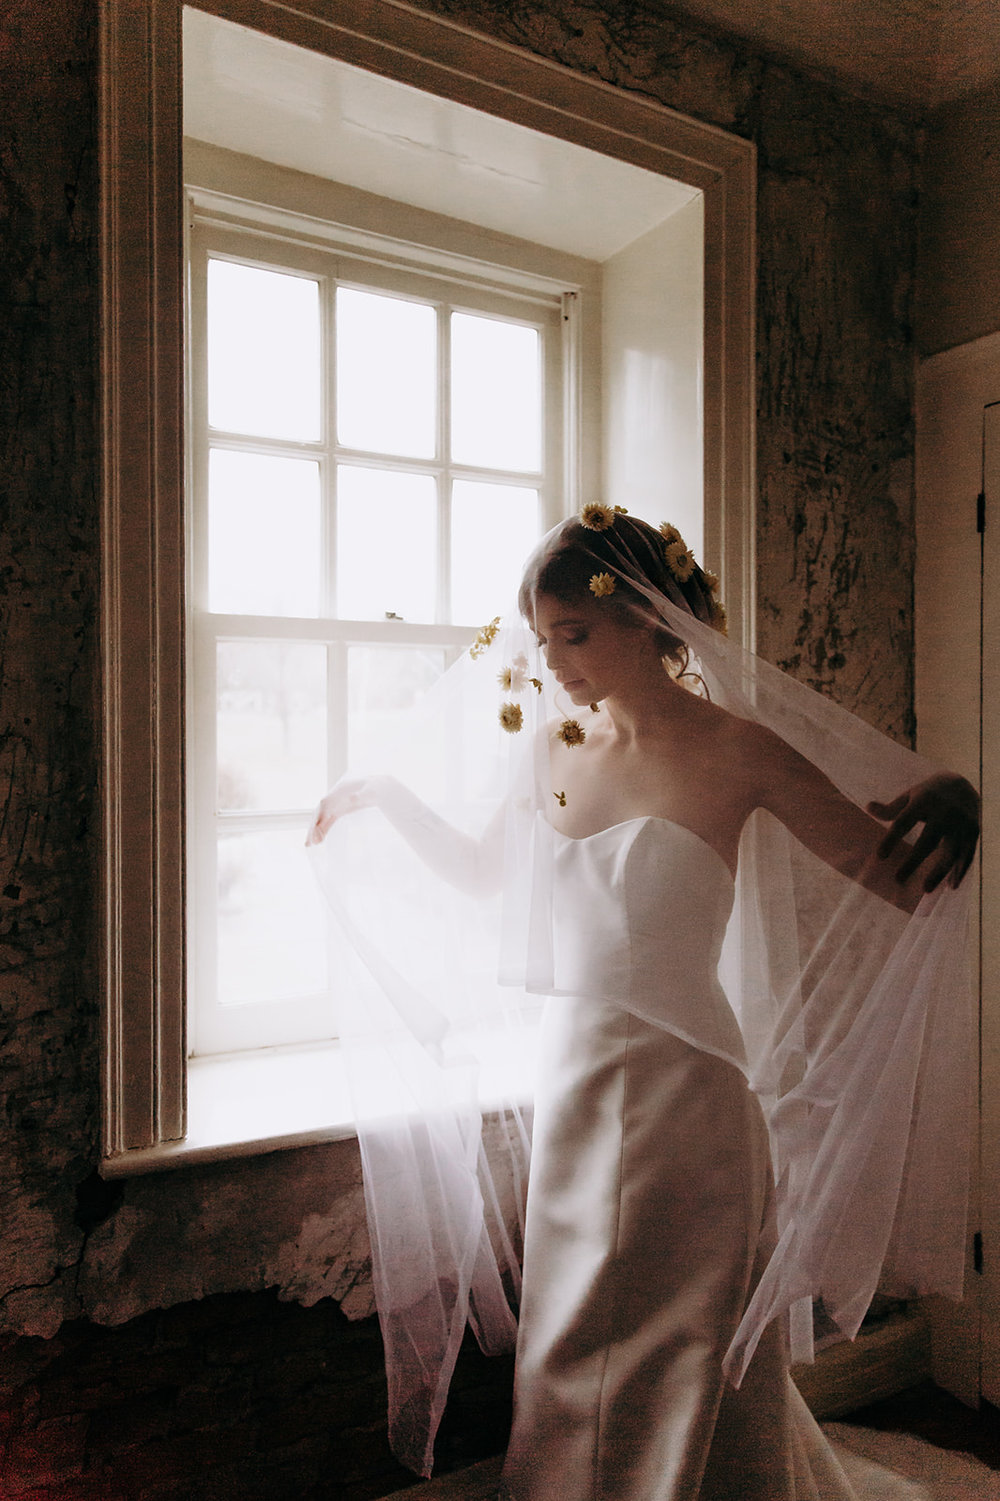 lea-ann-belter-bridal-editorial-windrift-hall-wedding-photographer-new-york-301.jpg